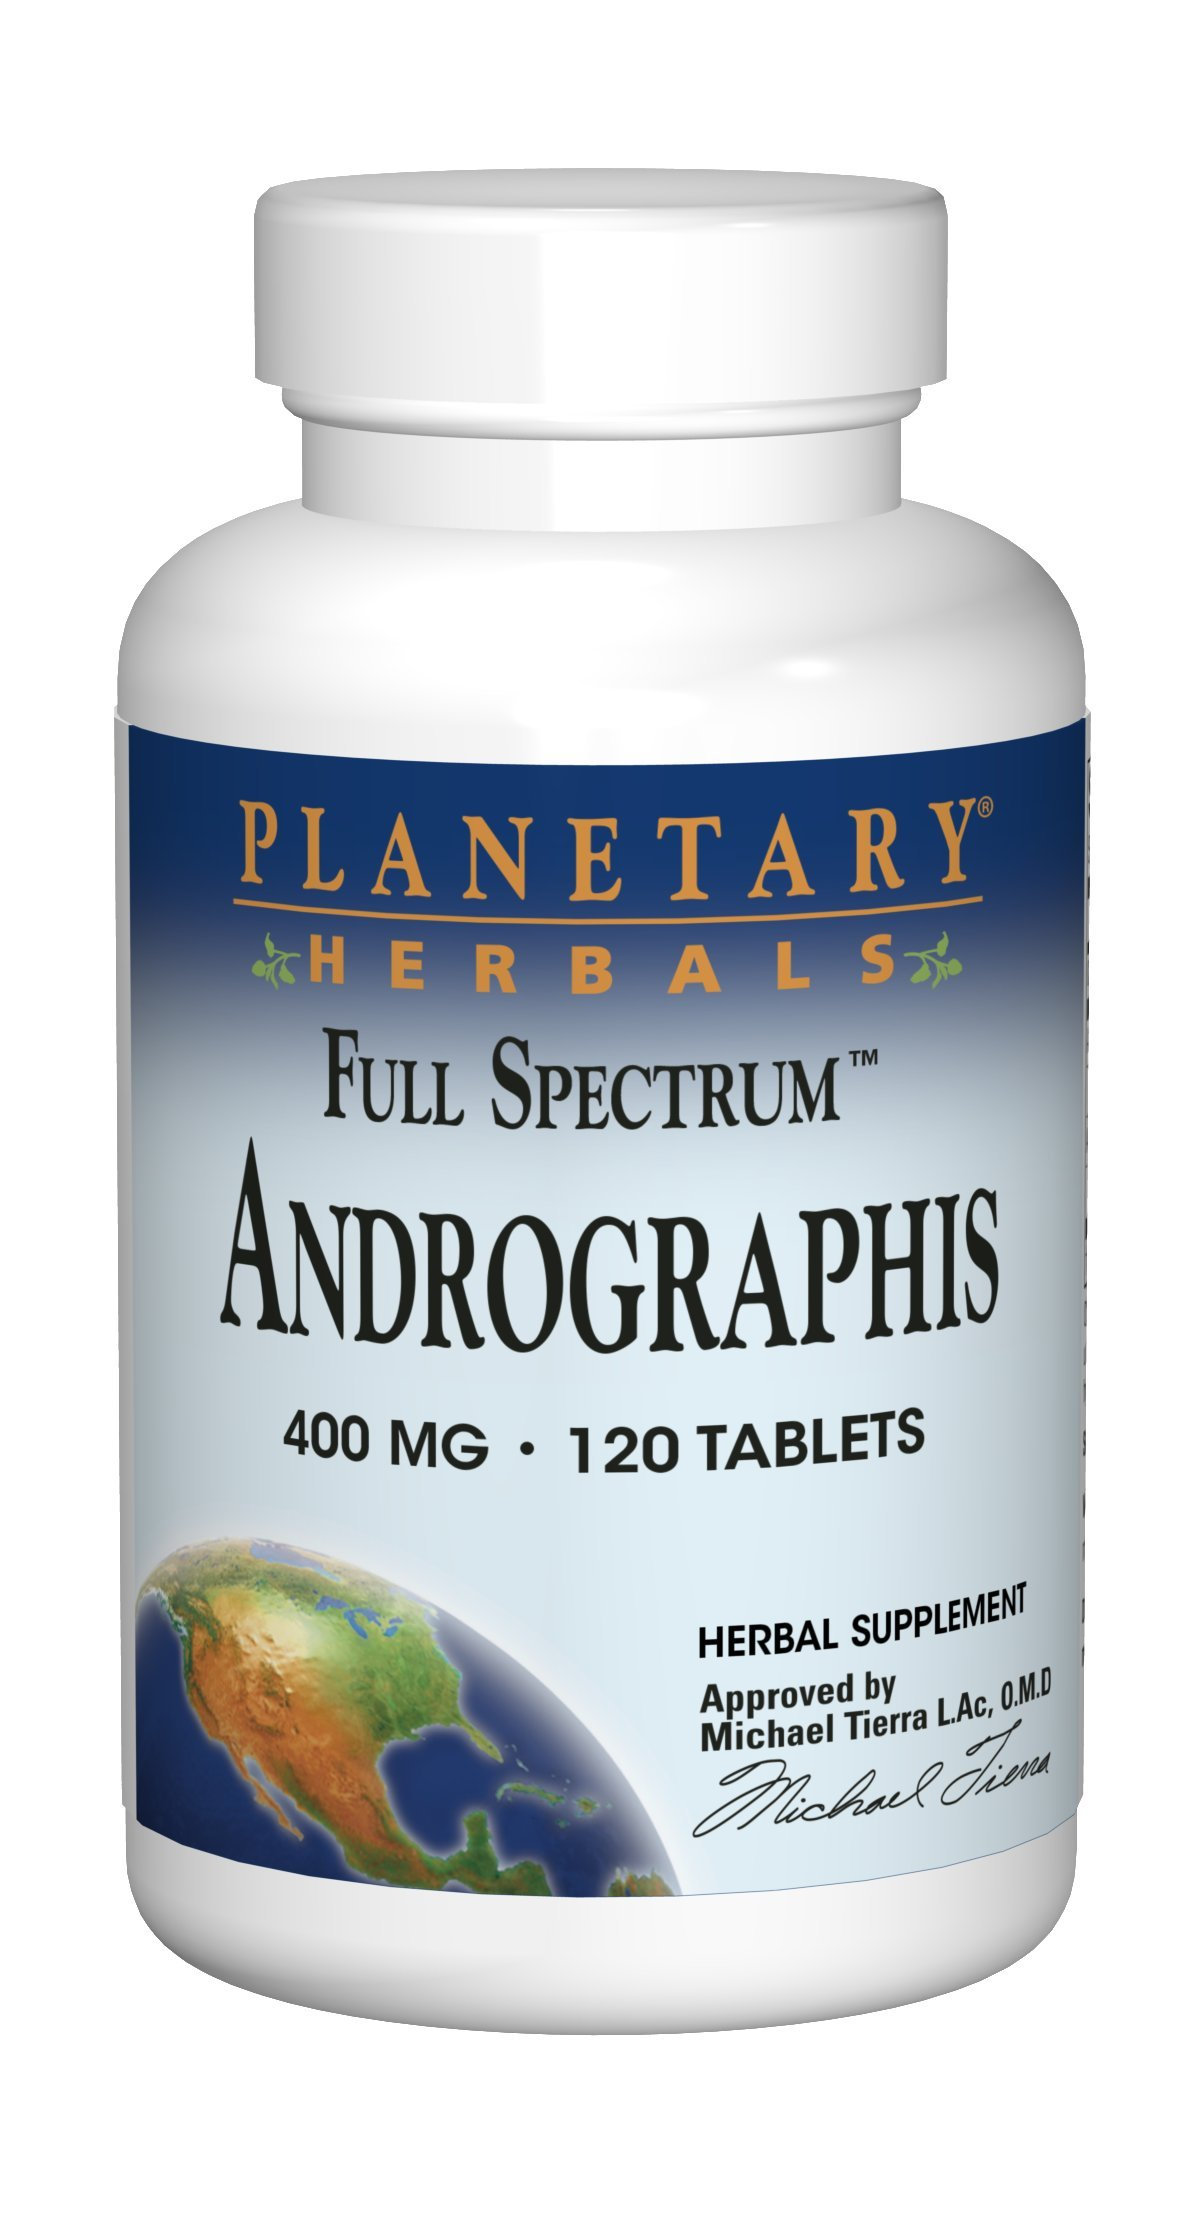 Planetary Herbals Full Spectrum Andrographis 400mg Support Healthy Digestive, Cardiovascular & Unrinary Systems - Support For Healthy Liver & Immune Function - Ayurvedic Herb - 120 Tablets